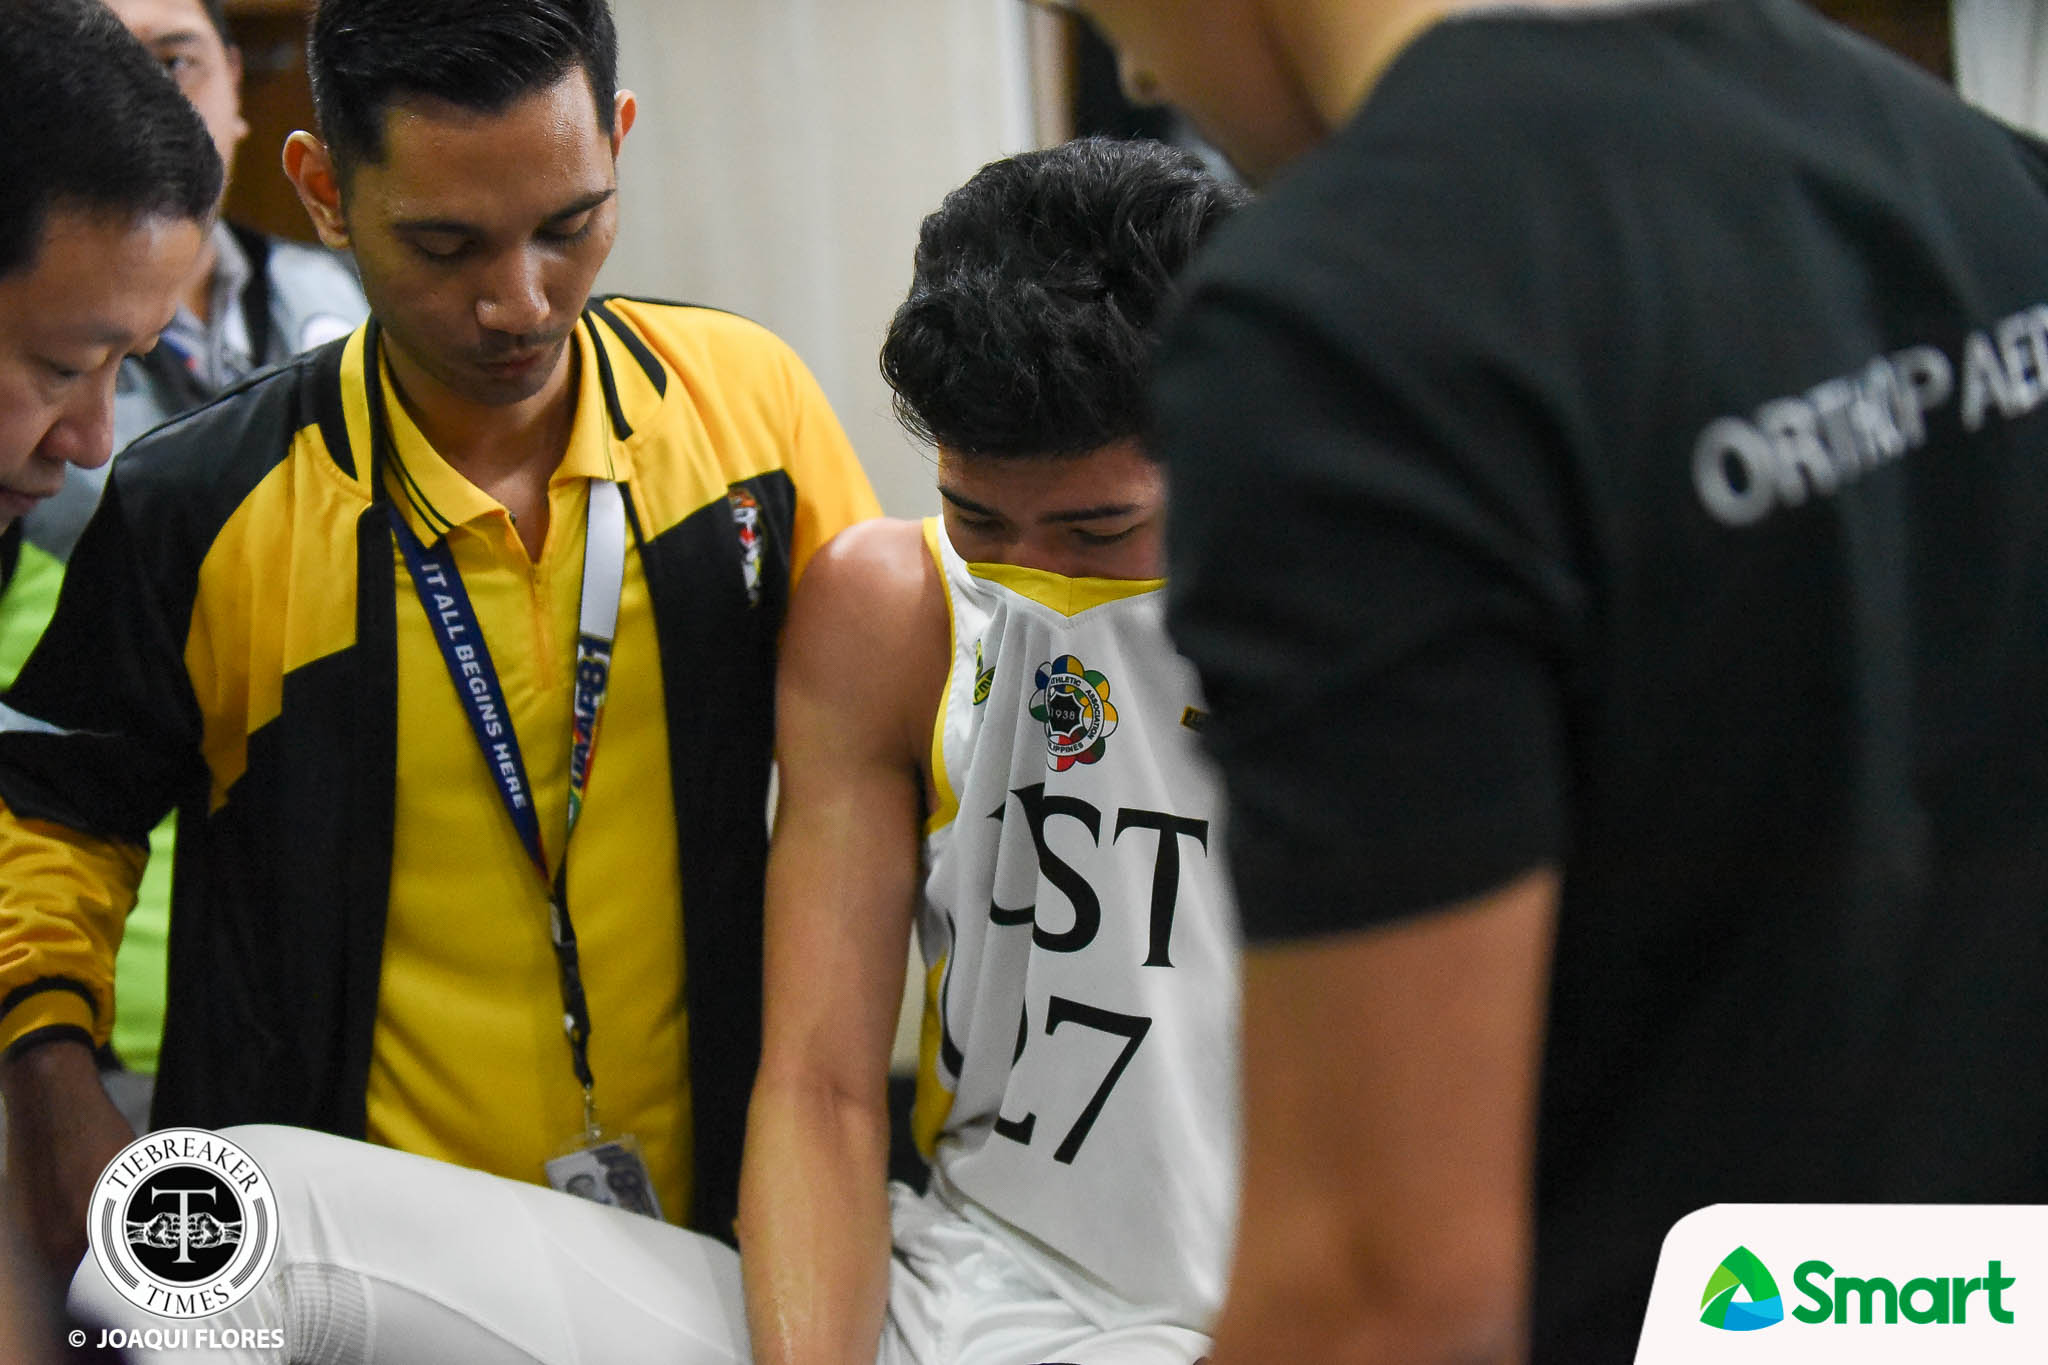 Tiebreaker Times Aldin Ayo shuts down CJ Cansino for final game: 'He had a good season' Basketball News UAAP UST  UST Men's Basketball UAAP Season 81 Men's Basketball UAAP Season 81 CJ Cansino Aldin Ayo